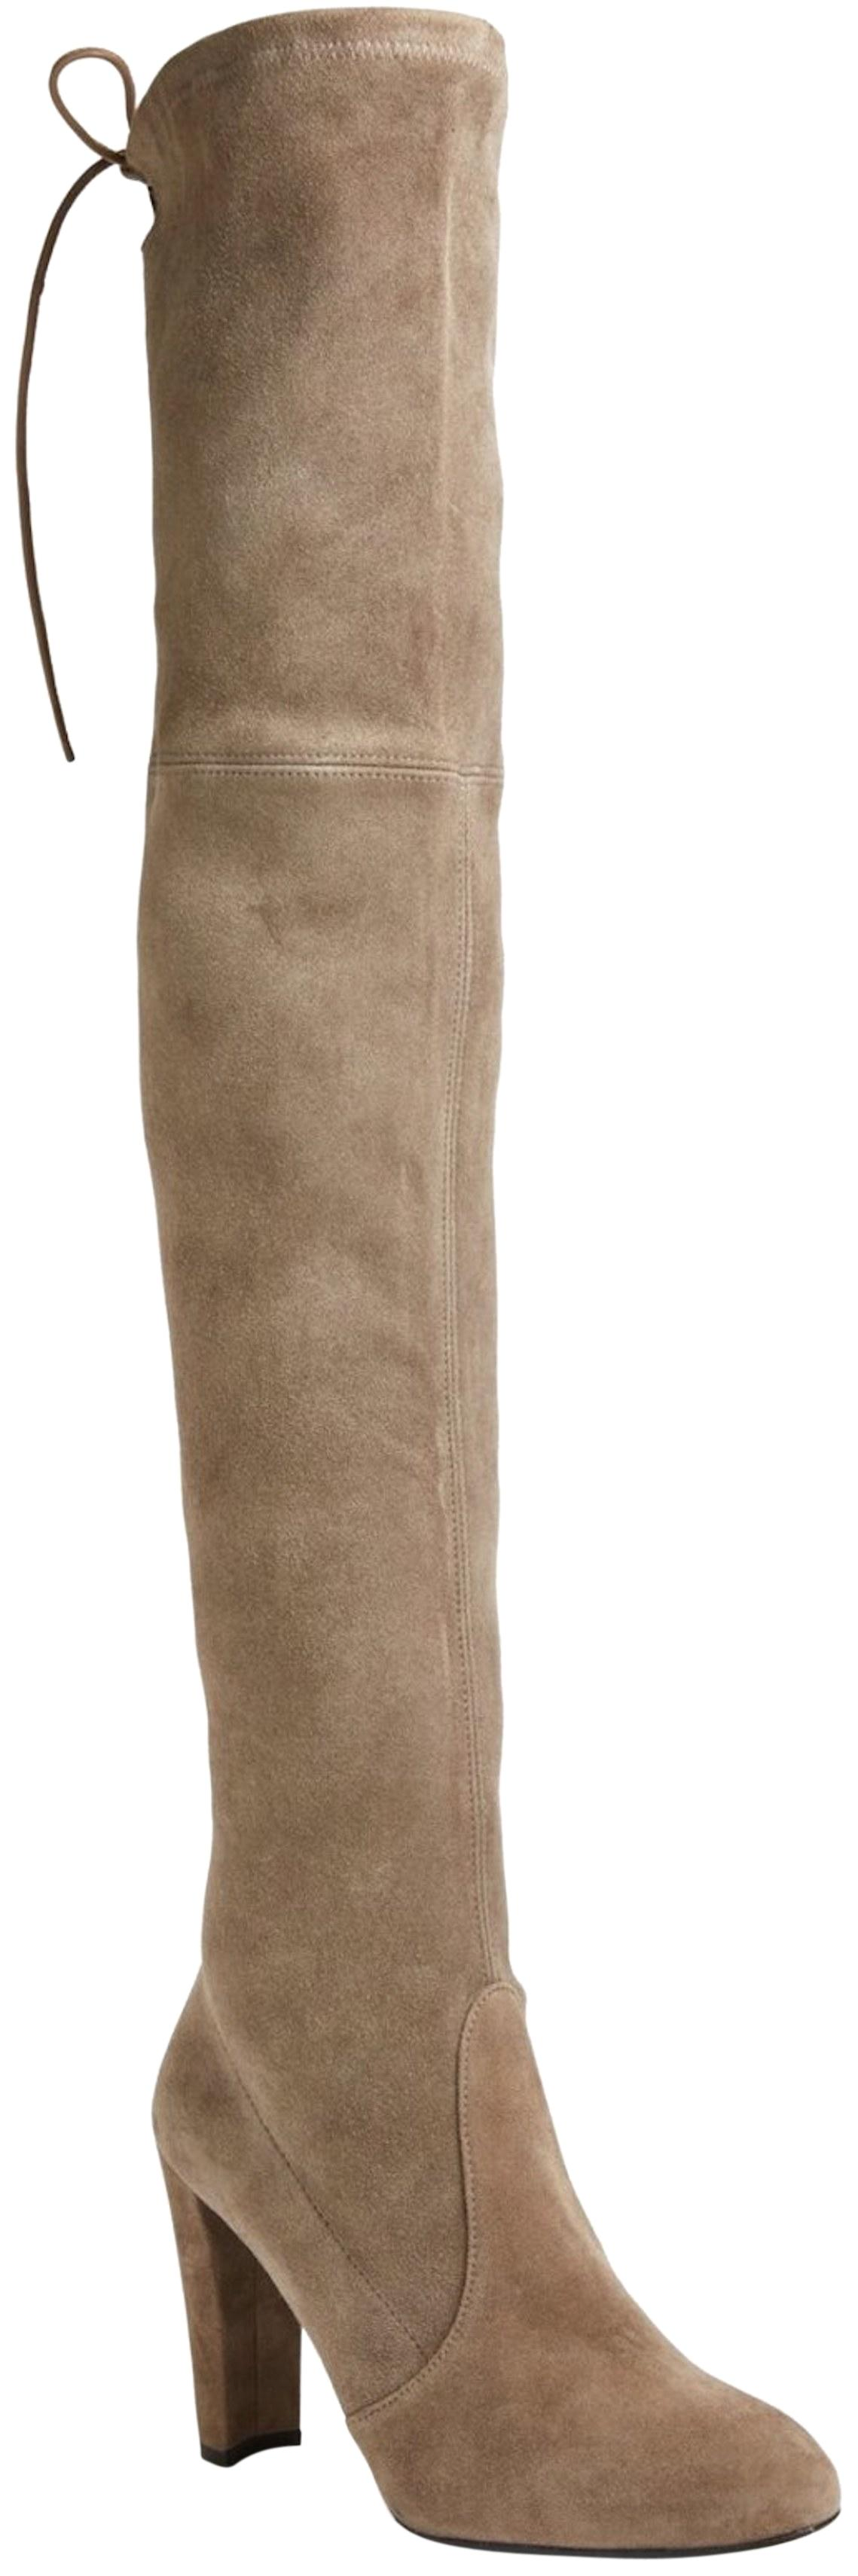 Stuart Weitzman Beige Highland Over The Knee In Shade: Praline Suede New In Box Boots/Booties Size US 9.5 Regular (M, B)